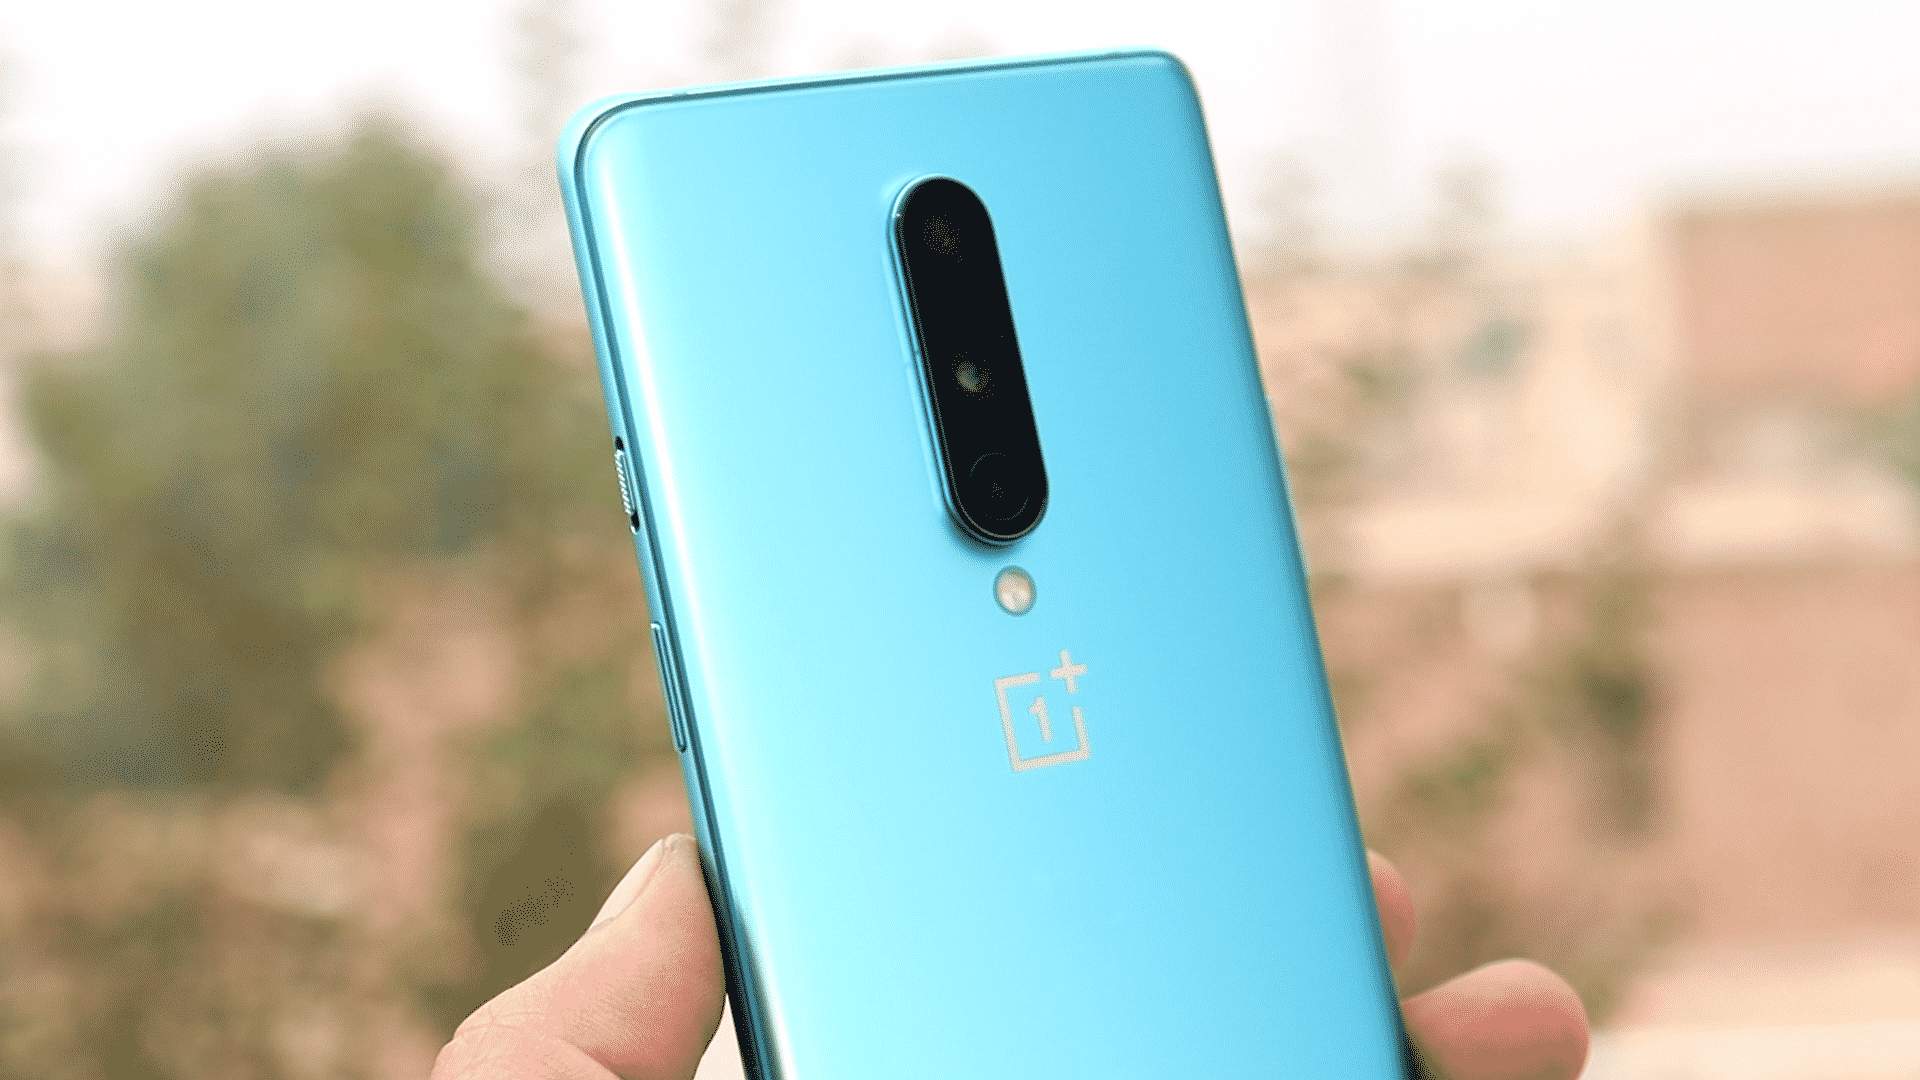 Oneplus pushed stable update to Oneplus 8 series users on Open beta 3,leading to data loss.How to save DATA